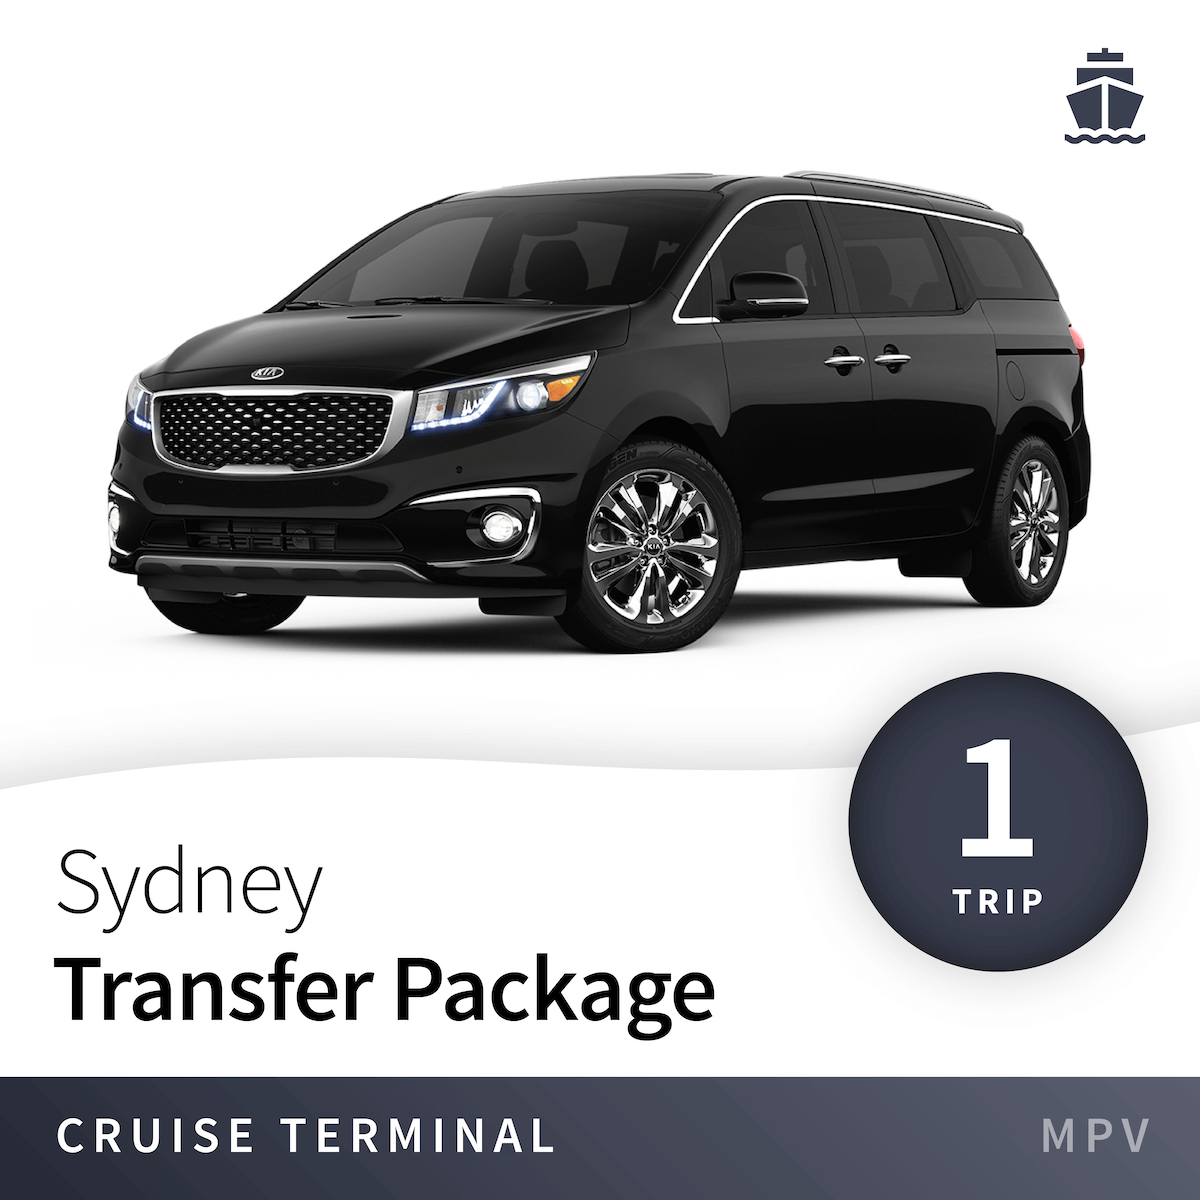 Sydney Cruise Terminal Transfer Package - MPV (1 Trip) 1